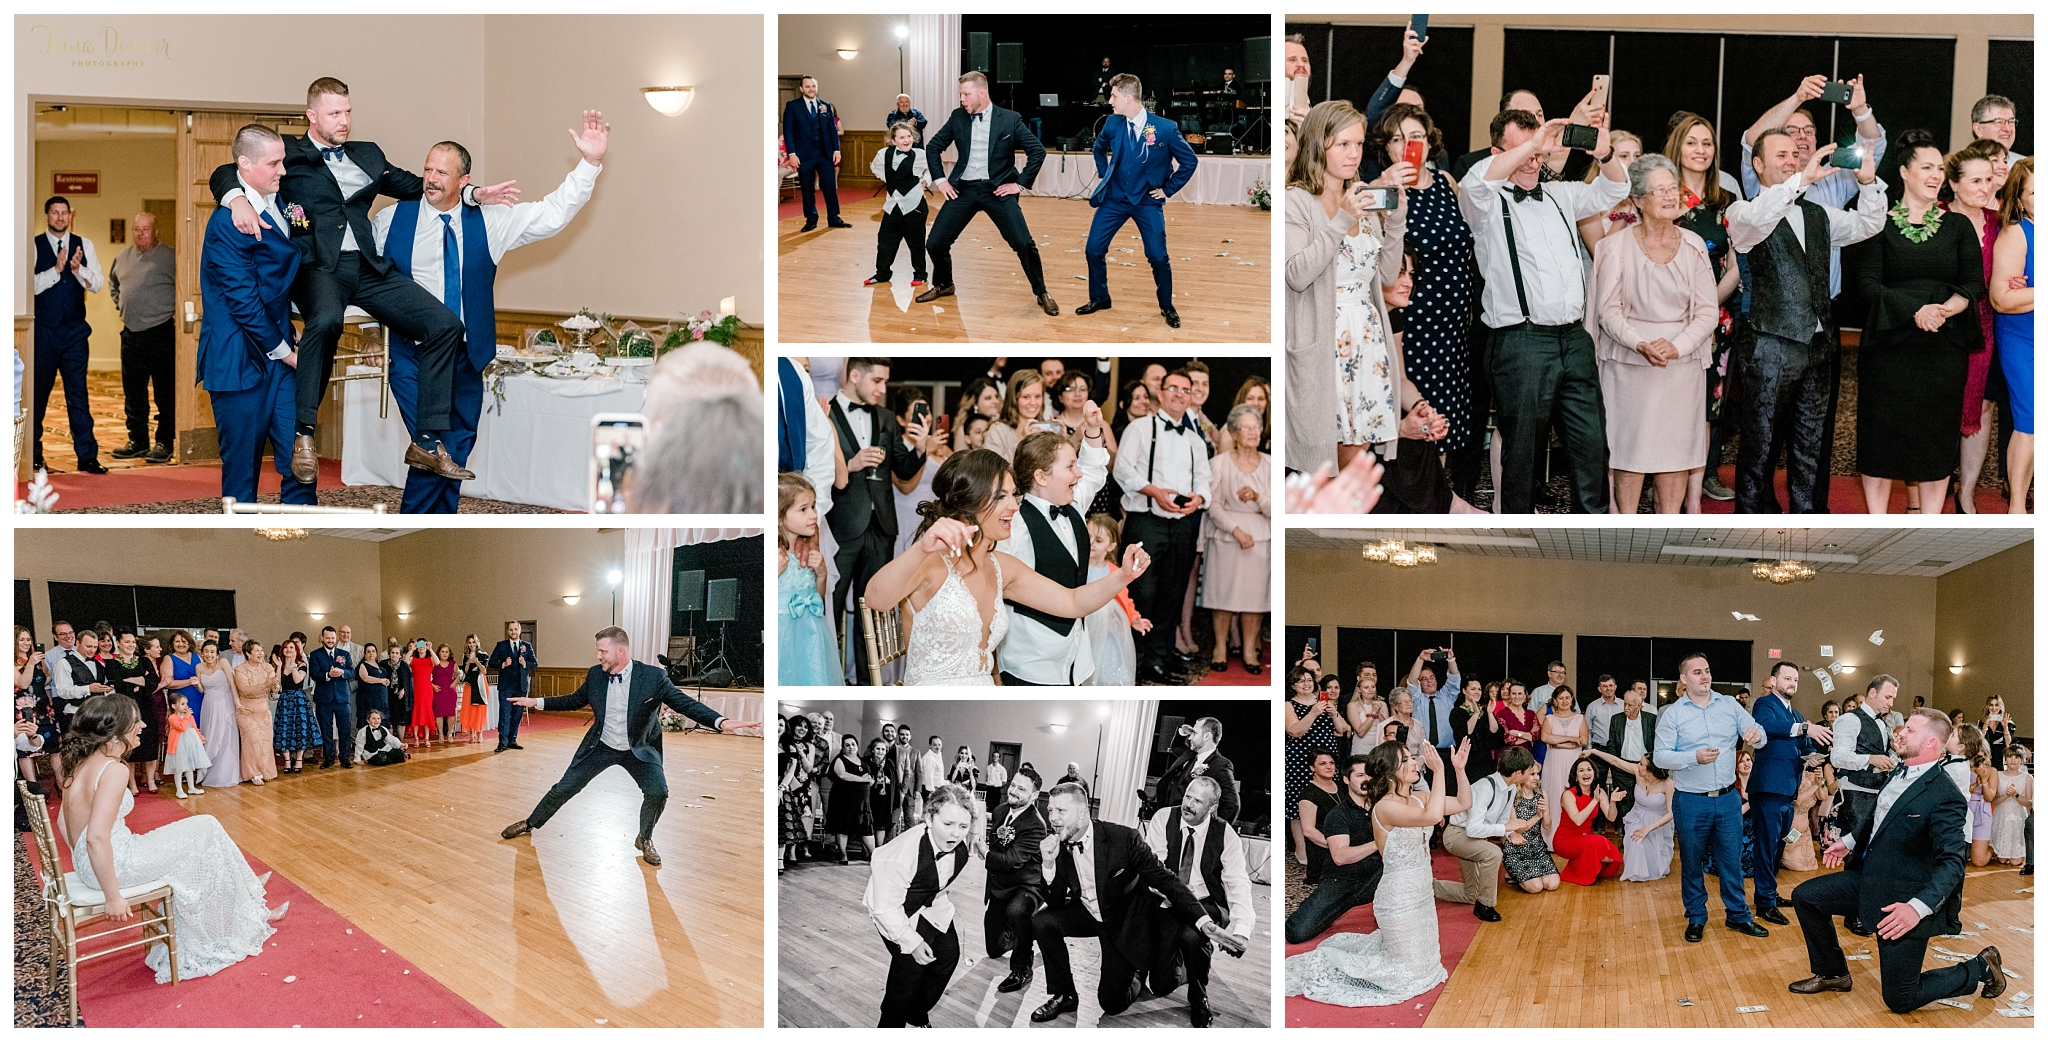 Groom's Surprise Choreographed Dance